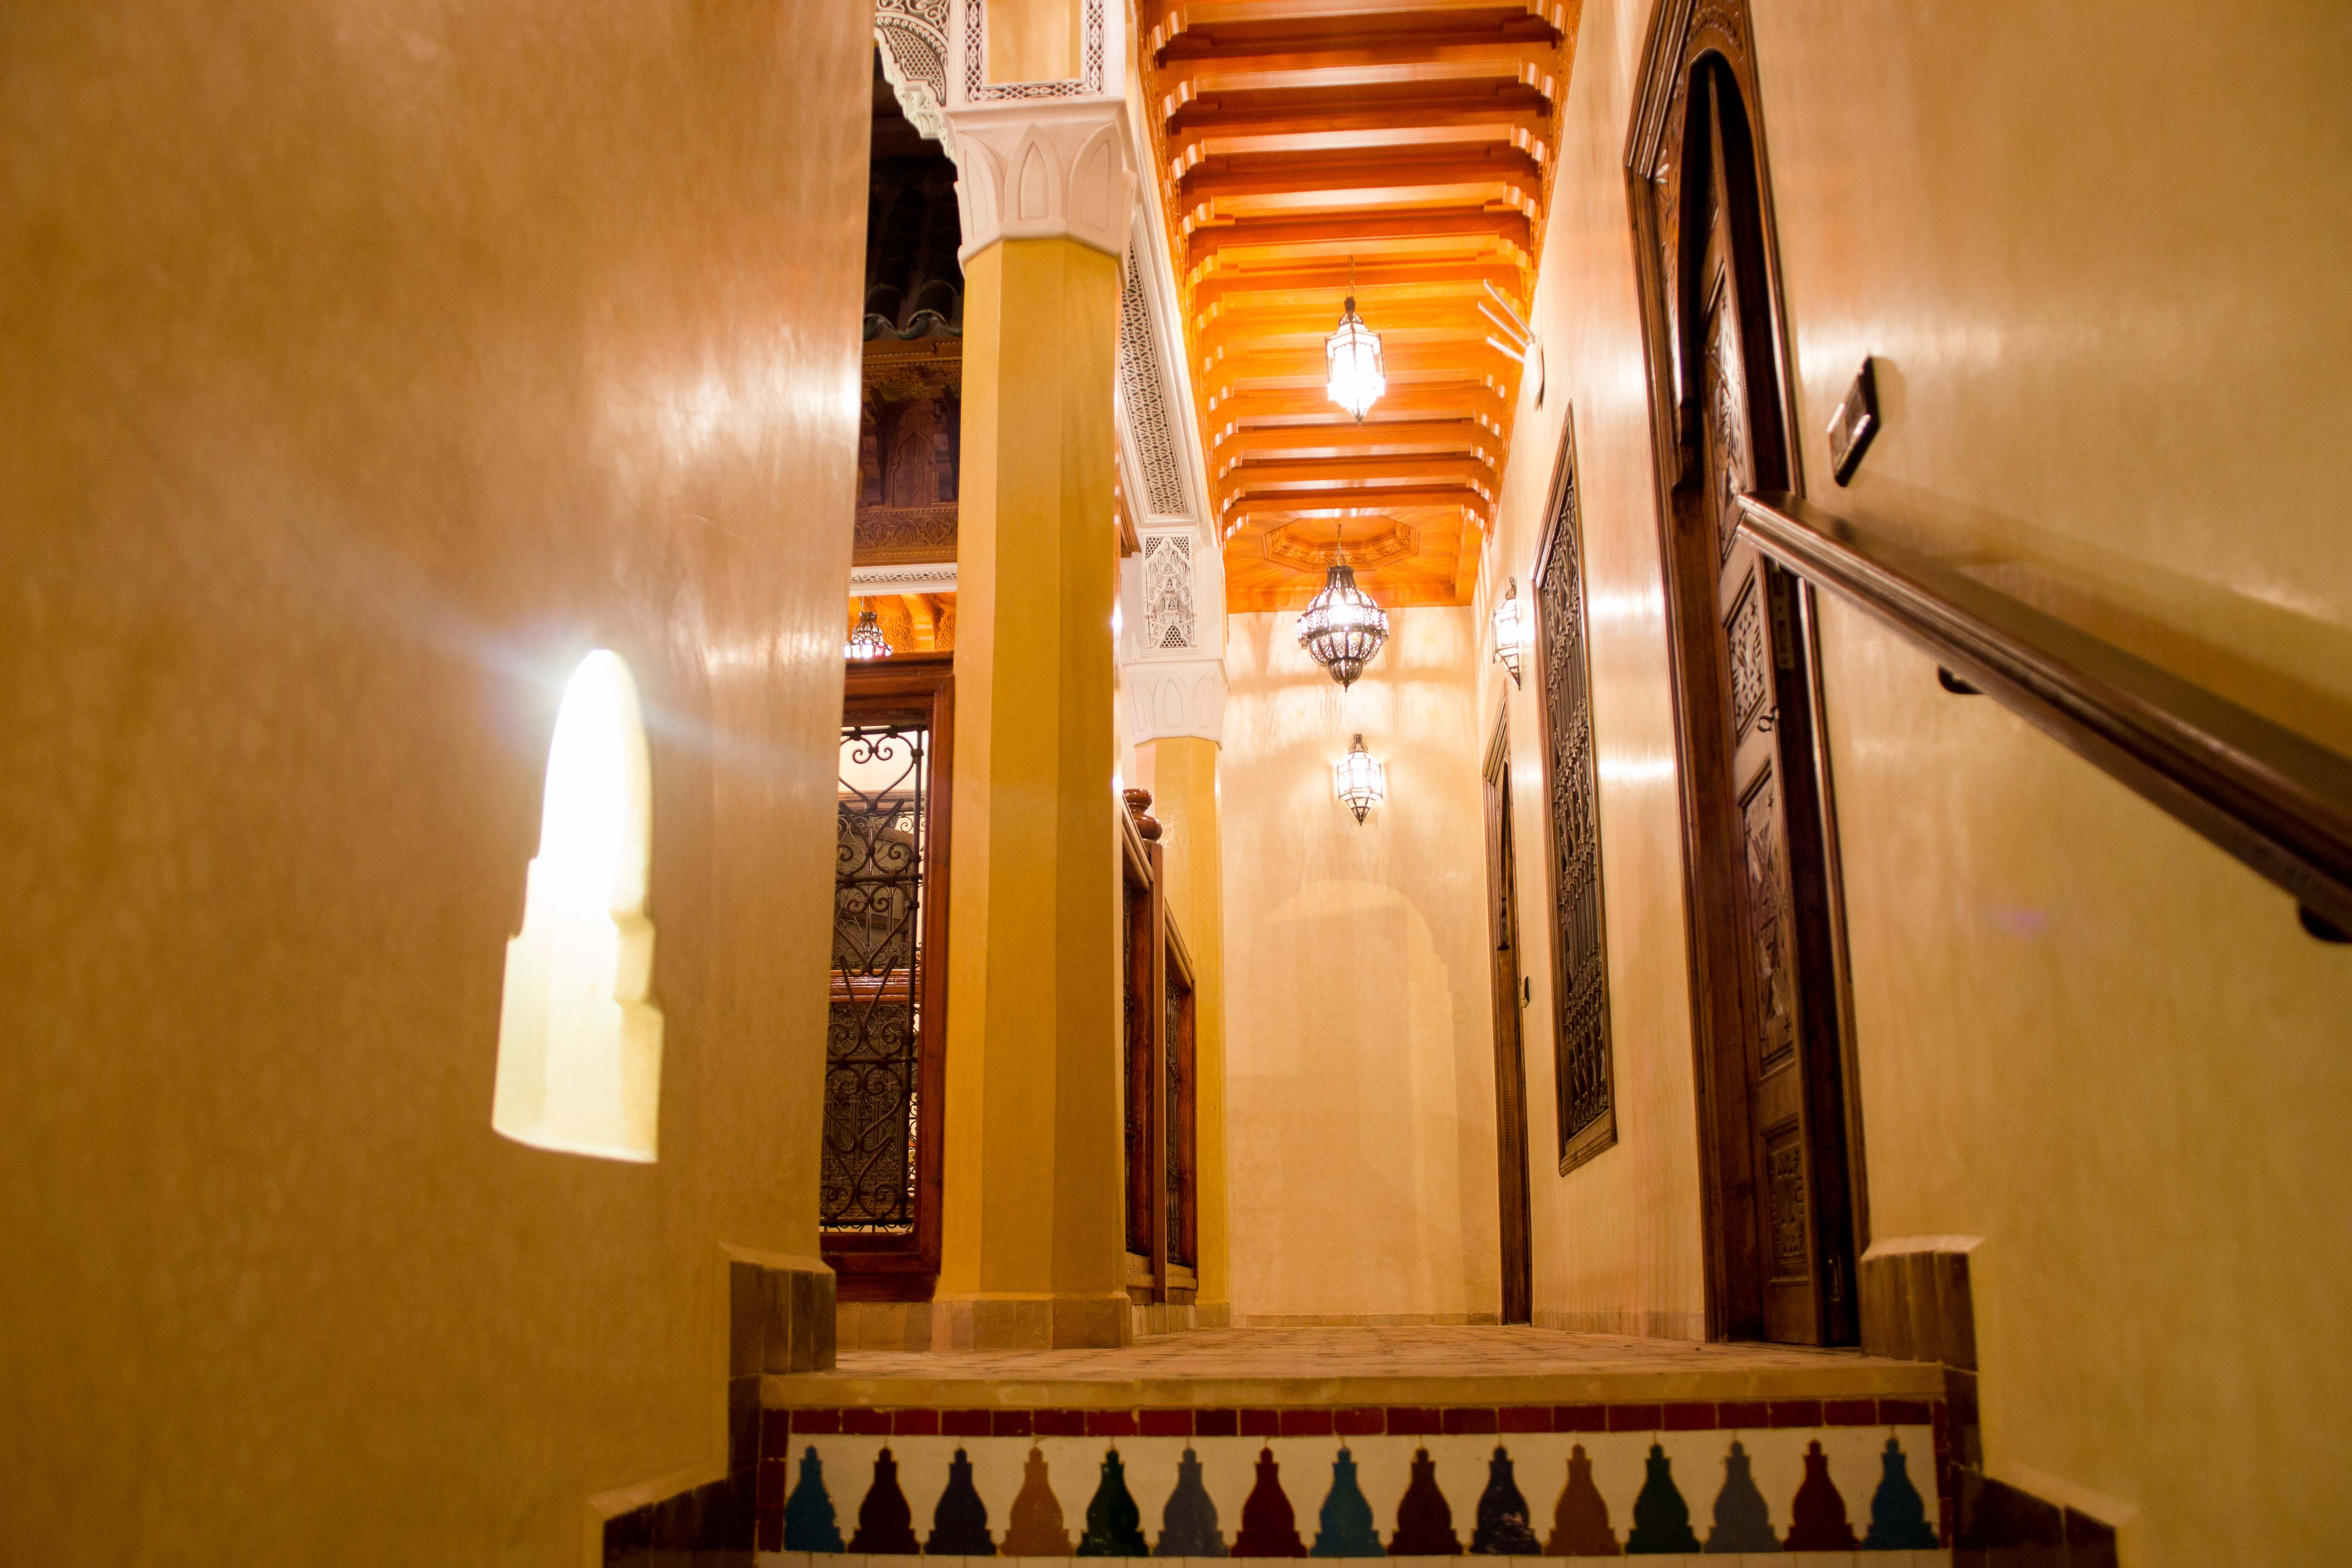 Moroccan traditional architecture is always present